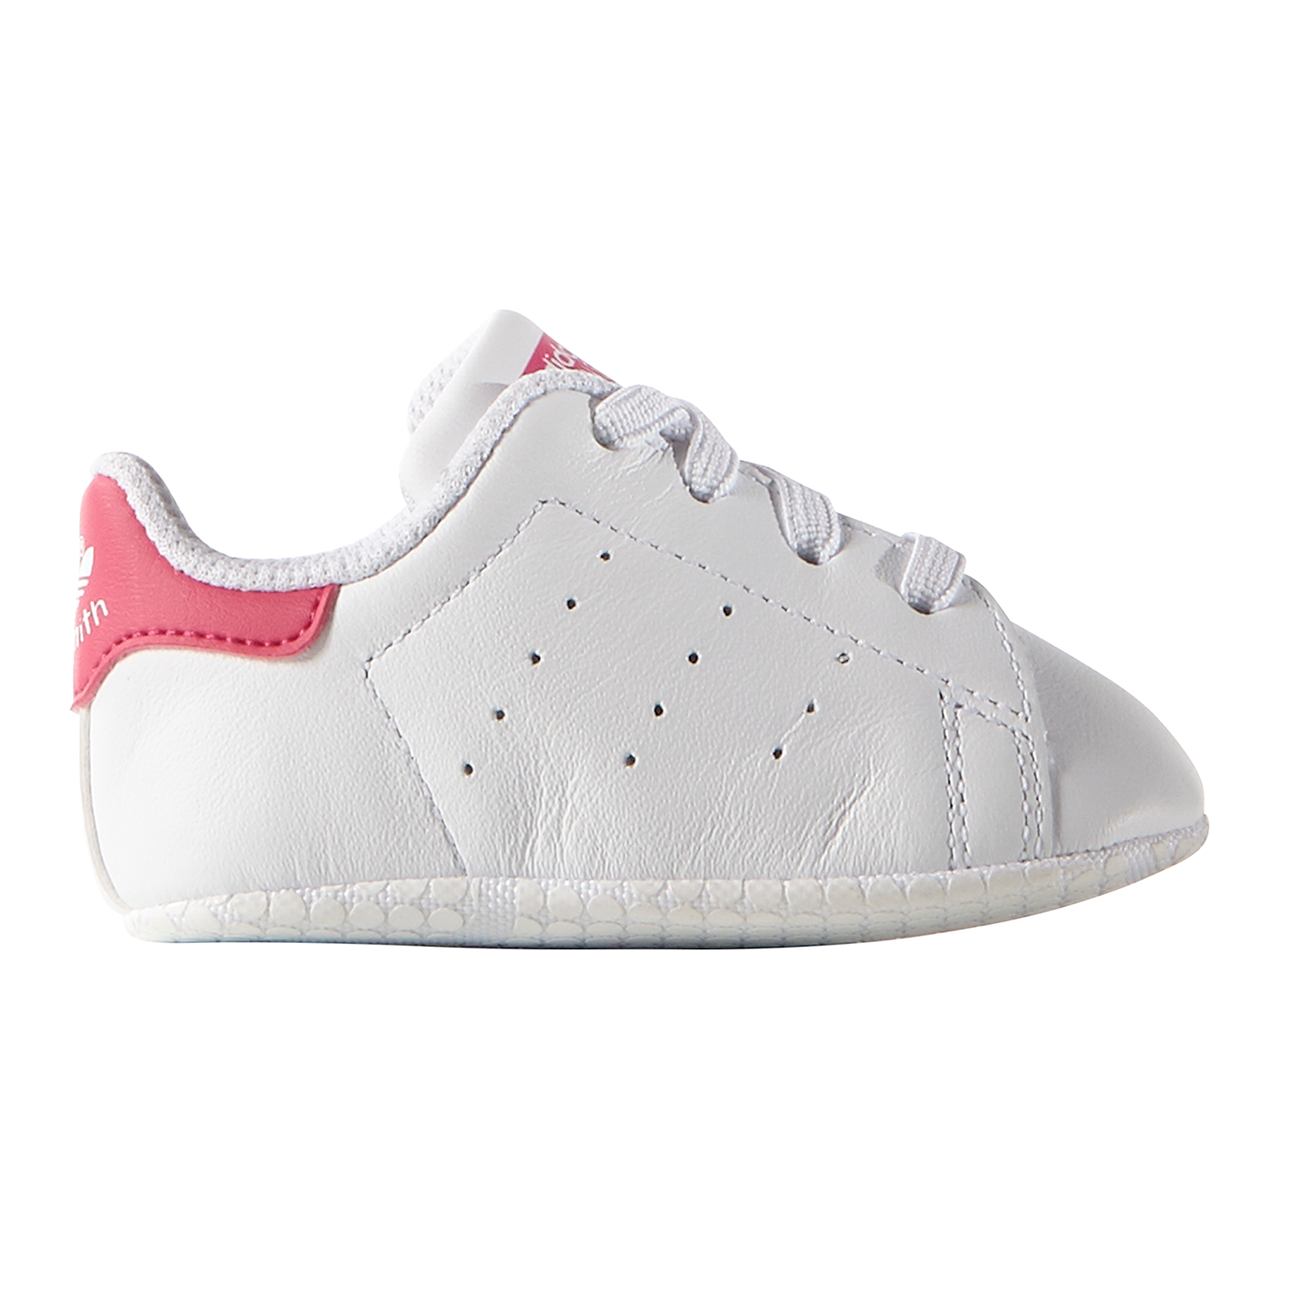 fada3d1b169 adidas Stan Smith Baby Sneakers White Pink S82618